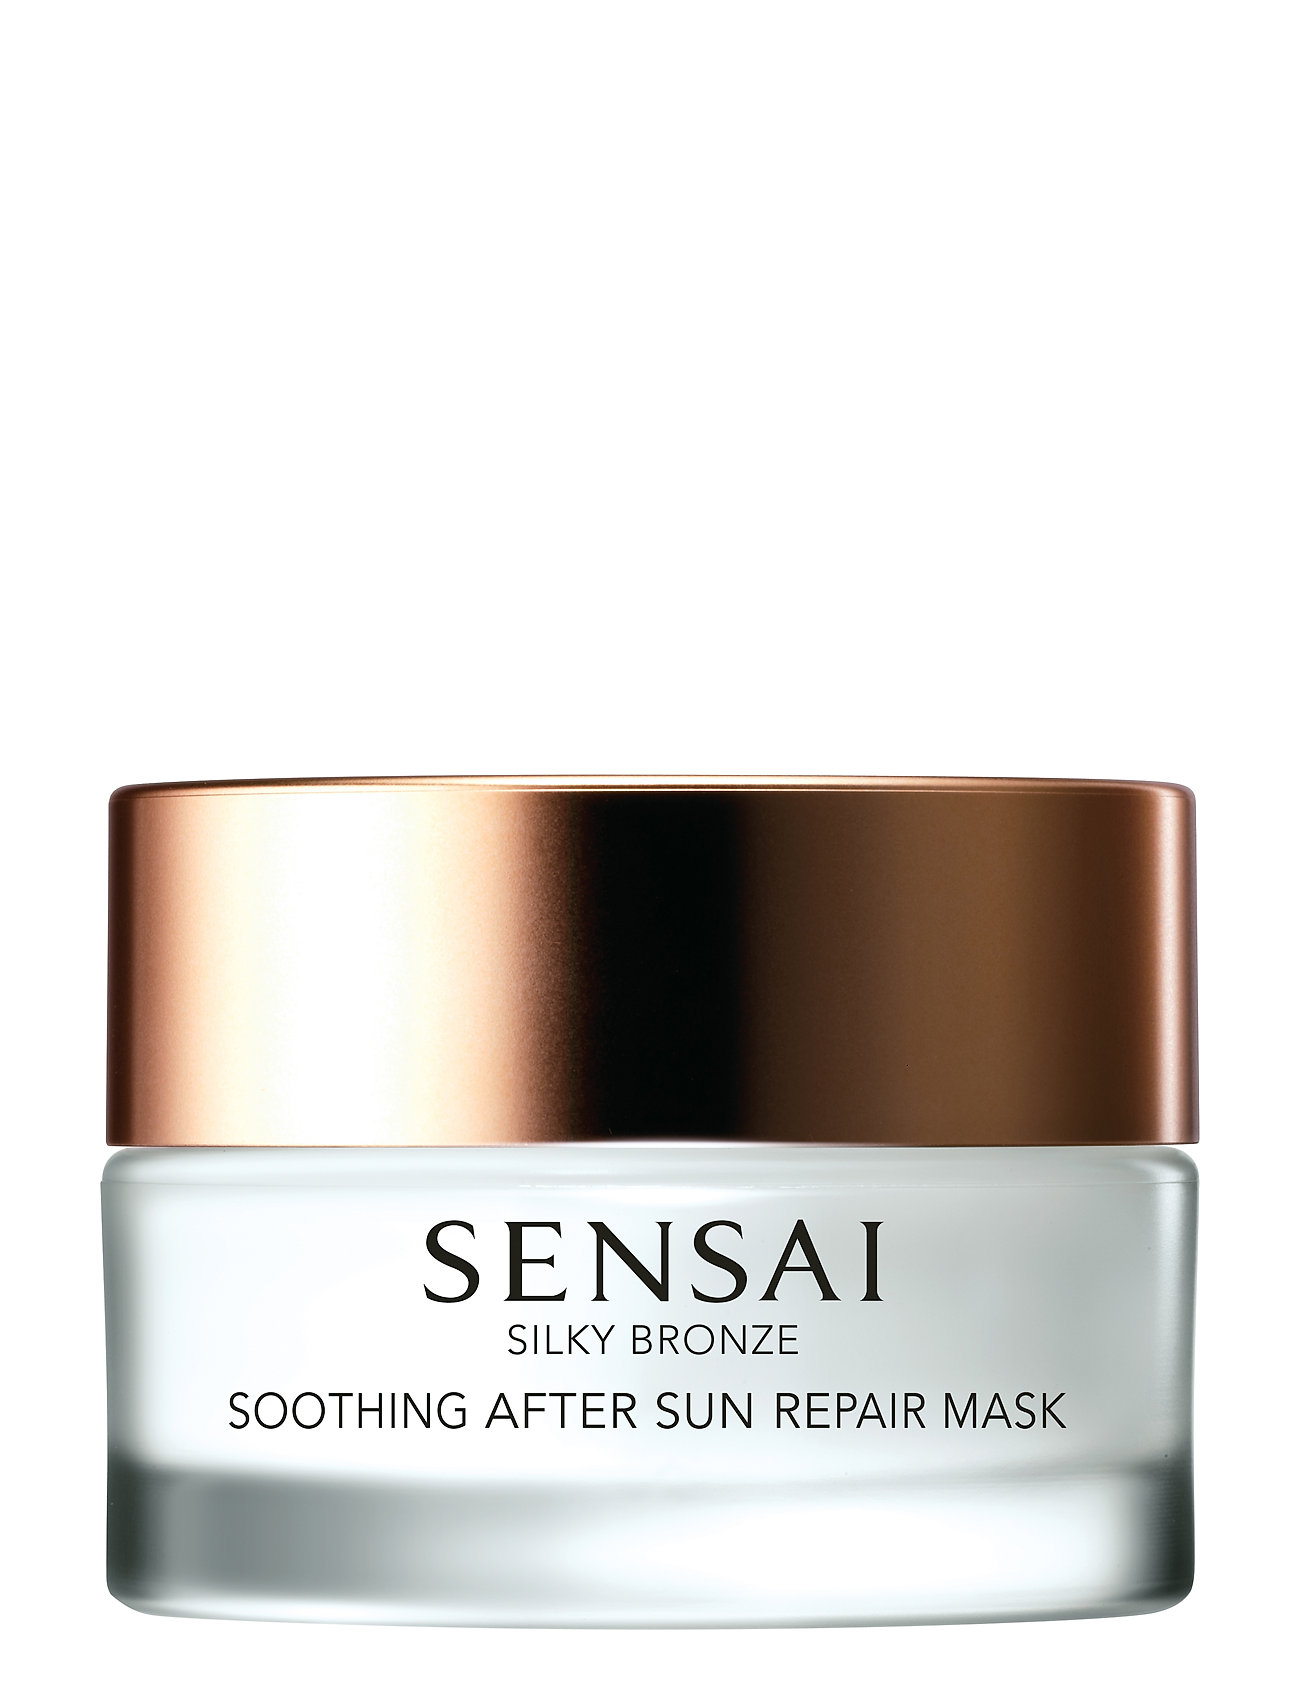 SENSAI Silky Bronze Soothing After Sun Repair Mask - NO COLOR